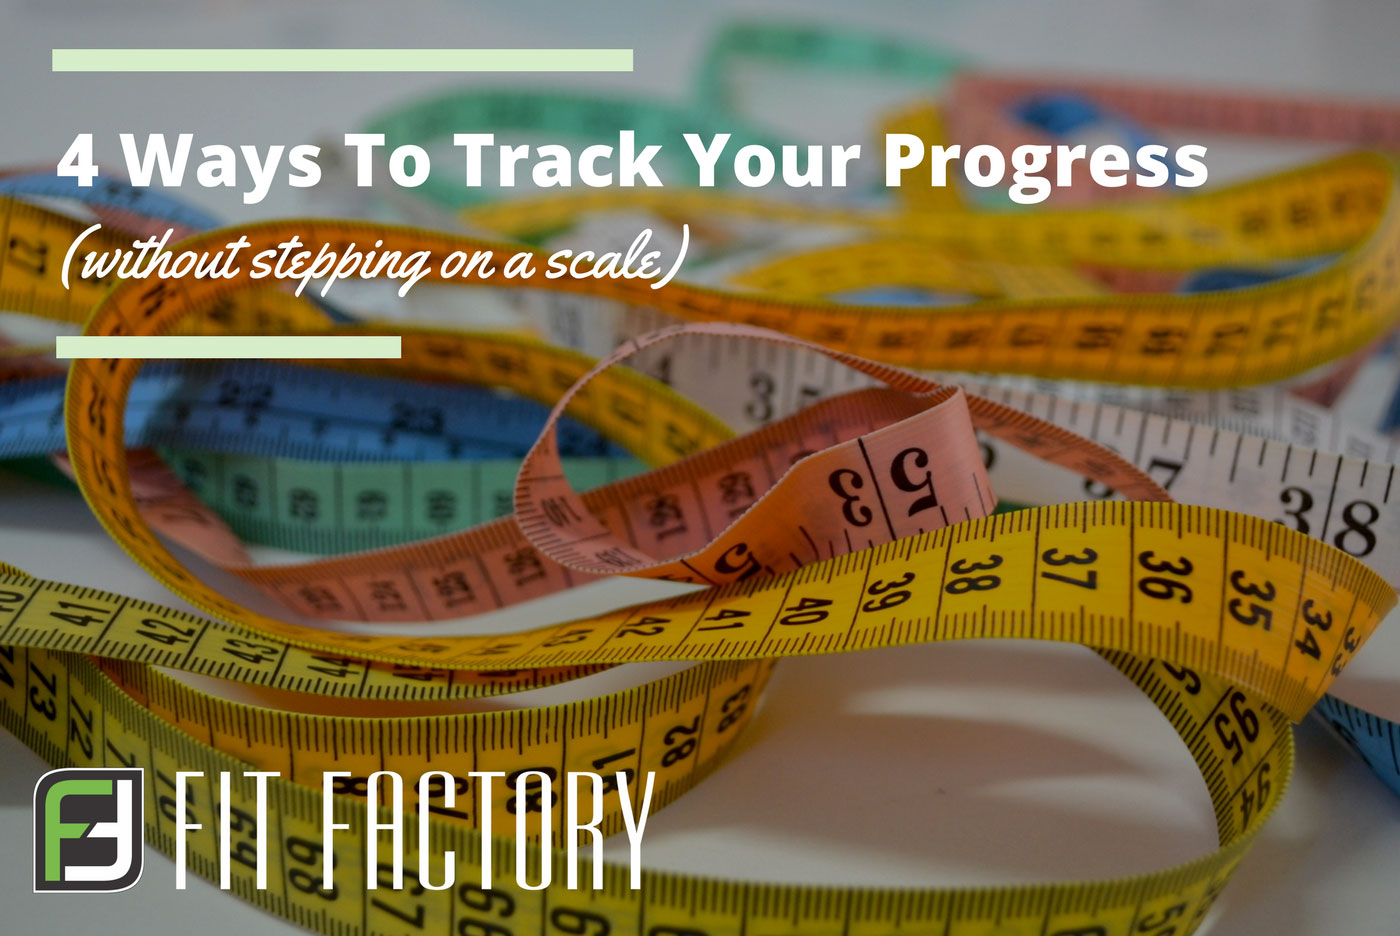 4 Ways To Track Your Progress (Without Stepping on the Scale)